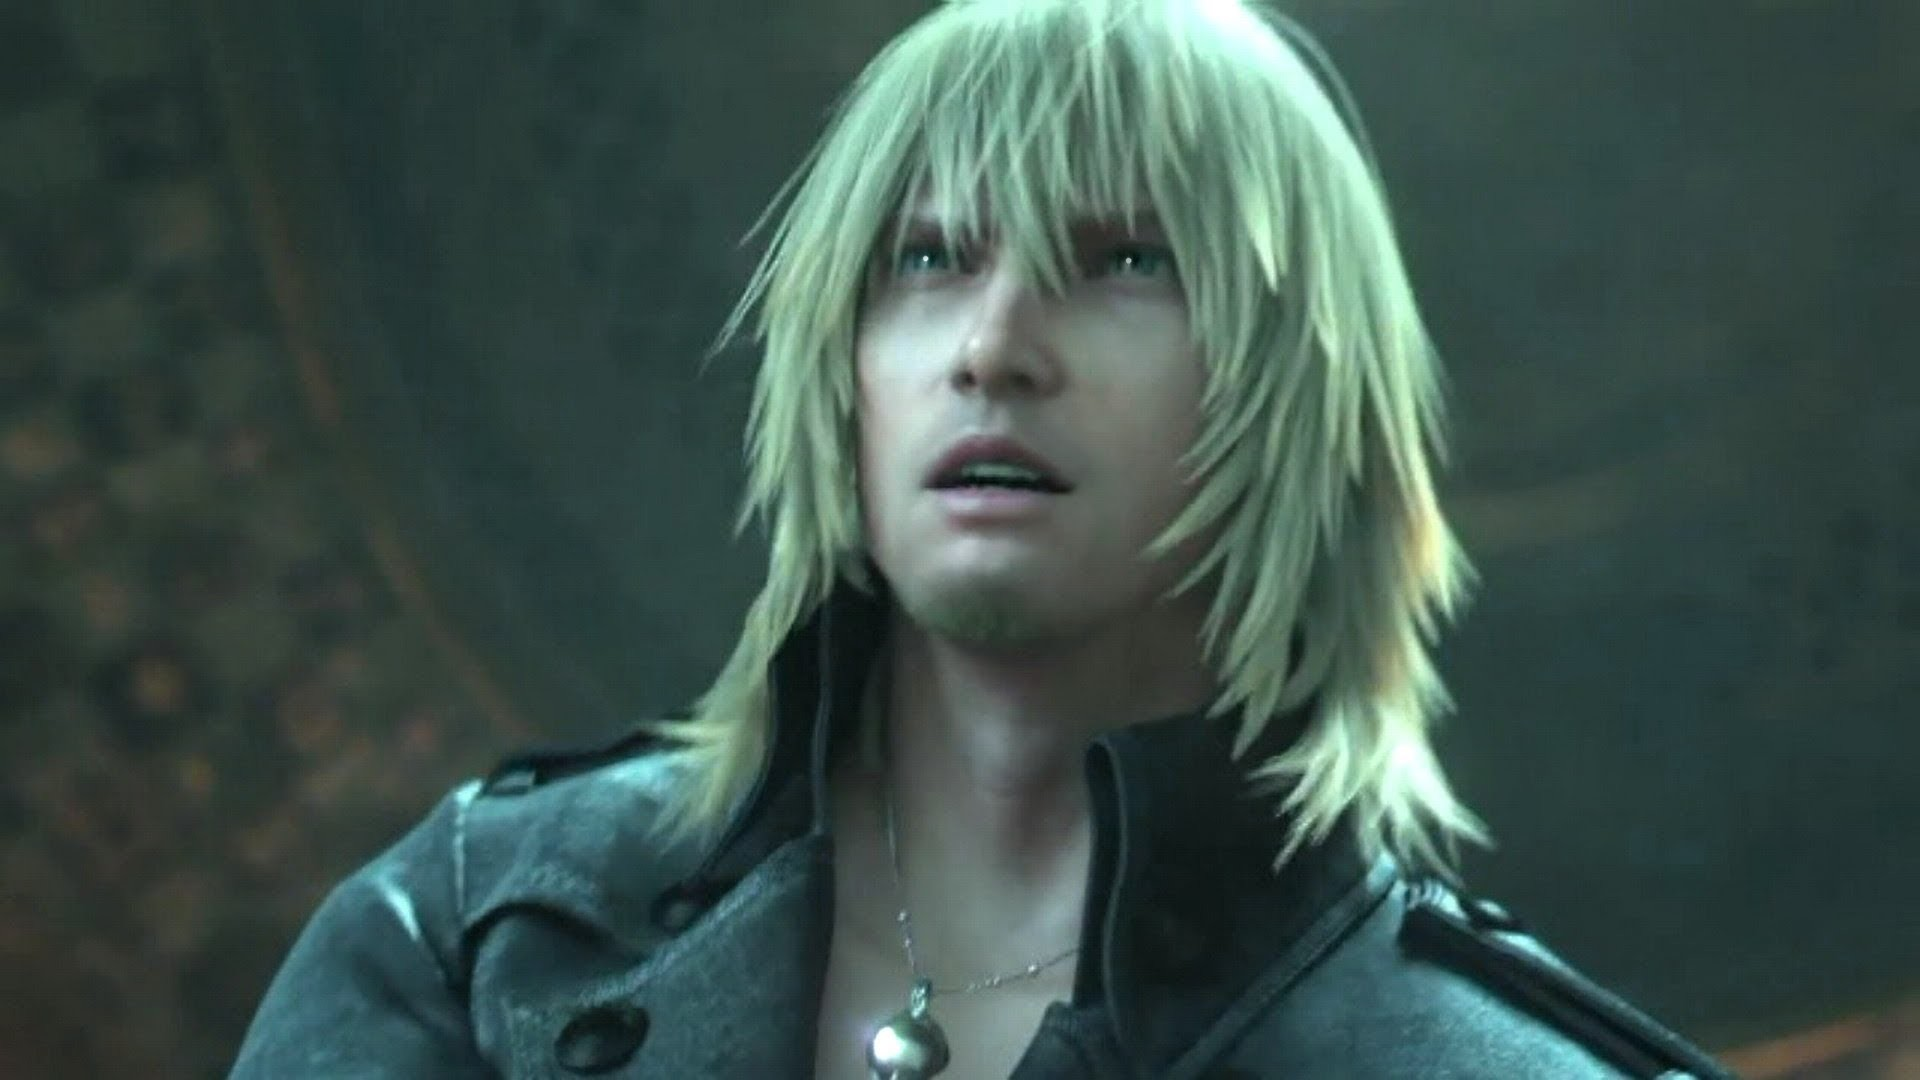 Snow harbors growing regret over having been unable to save Serah and being  unable to halt the world's decline, getting to the point he is willing to  die to …